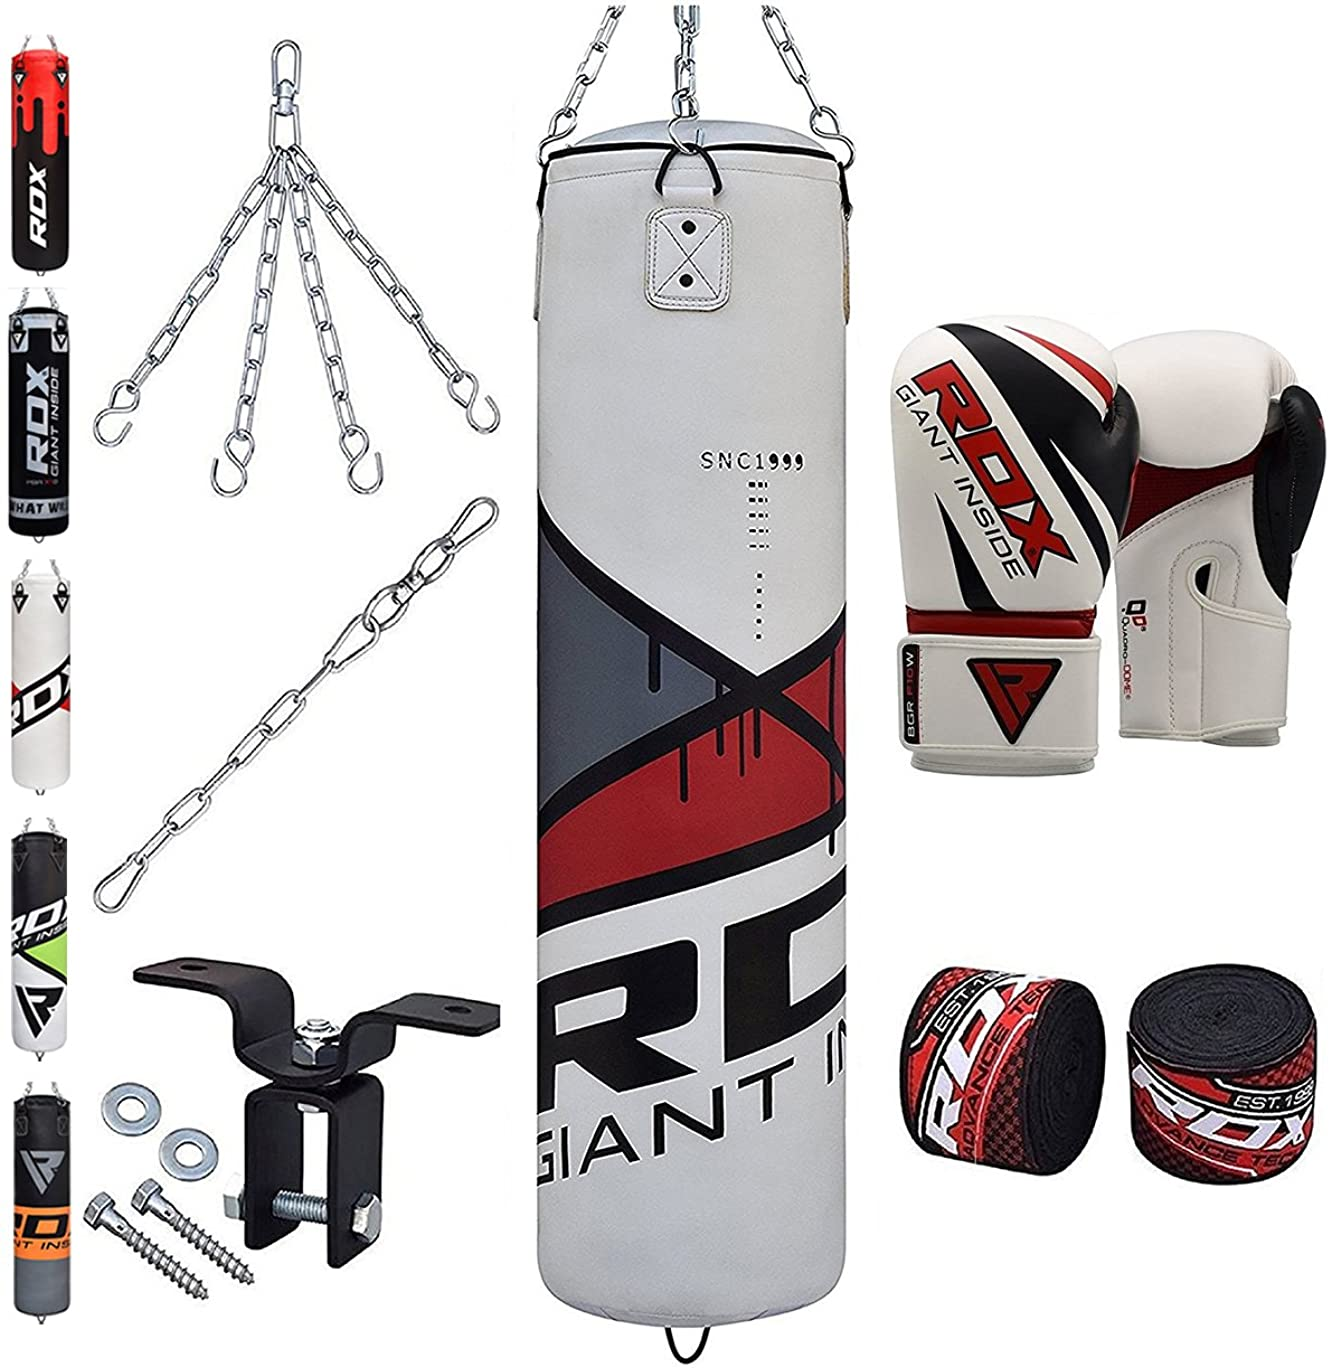 RDX Punching Bag Heavy Boxing 4FT 5FT Filled MMA Training Gloves Kickboxing Ceiling Hook 8PC Punching Bags